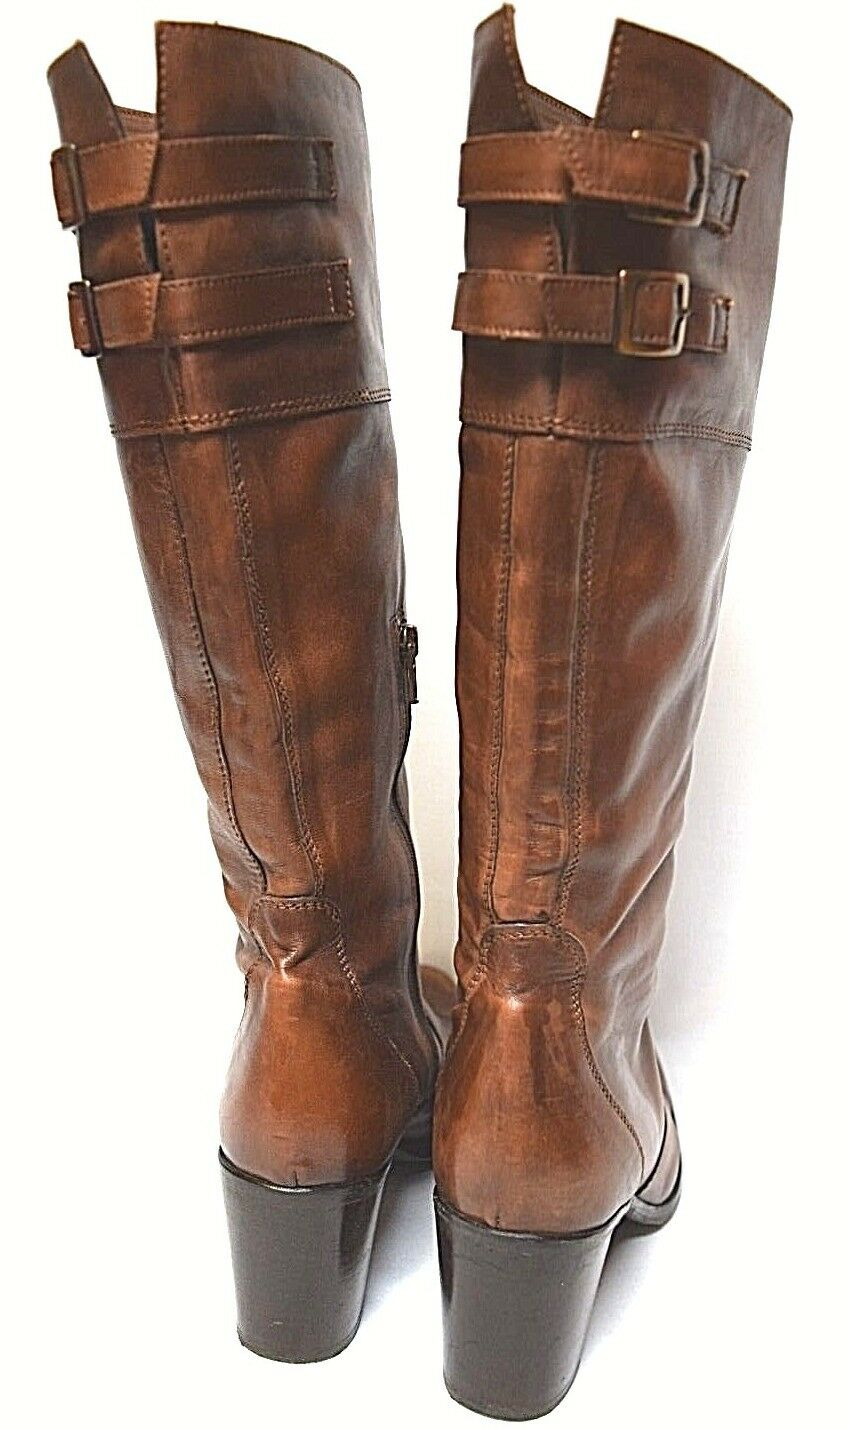 Italian / Leather Boots sz 10 / Italian 41 PROGETTO Vintage-look Knee-High Cognac AS NEW! 7dd3e9